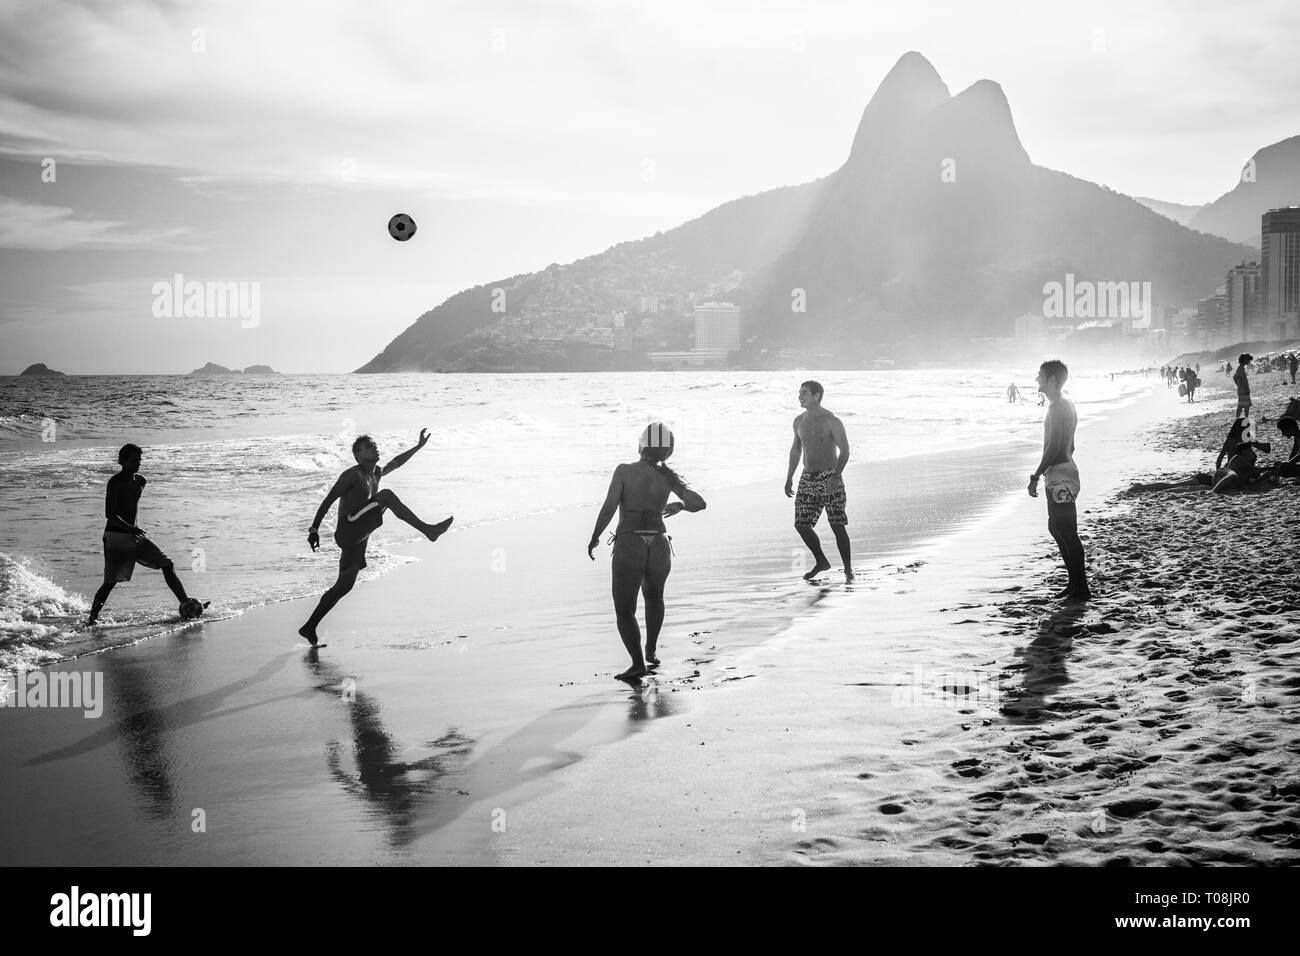 RIO DE JANEIRO, BRAZIL - FEBRUARY 24, 2015: A group of Brazilians playing on the shore of Ipanema Beach, with the famous Dois Irmaos mountain behind them Stock Photo